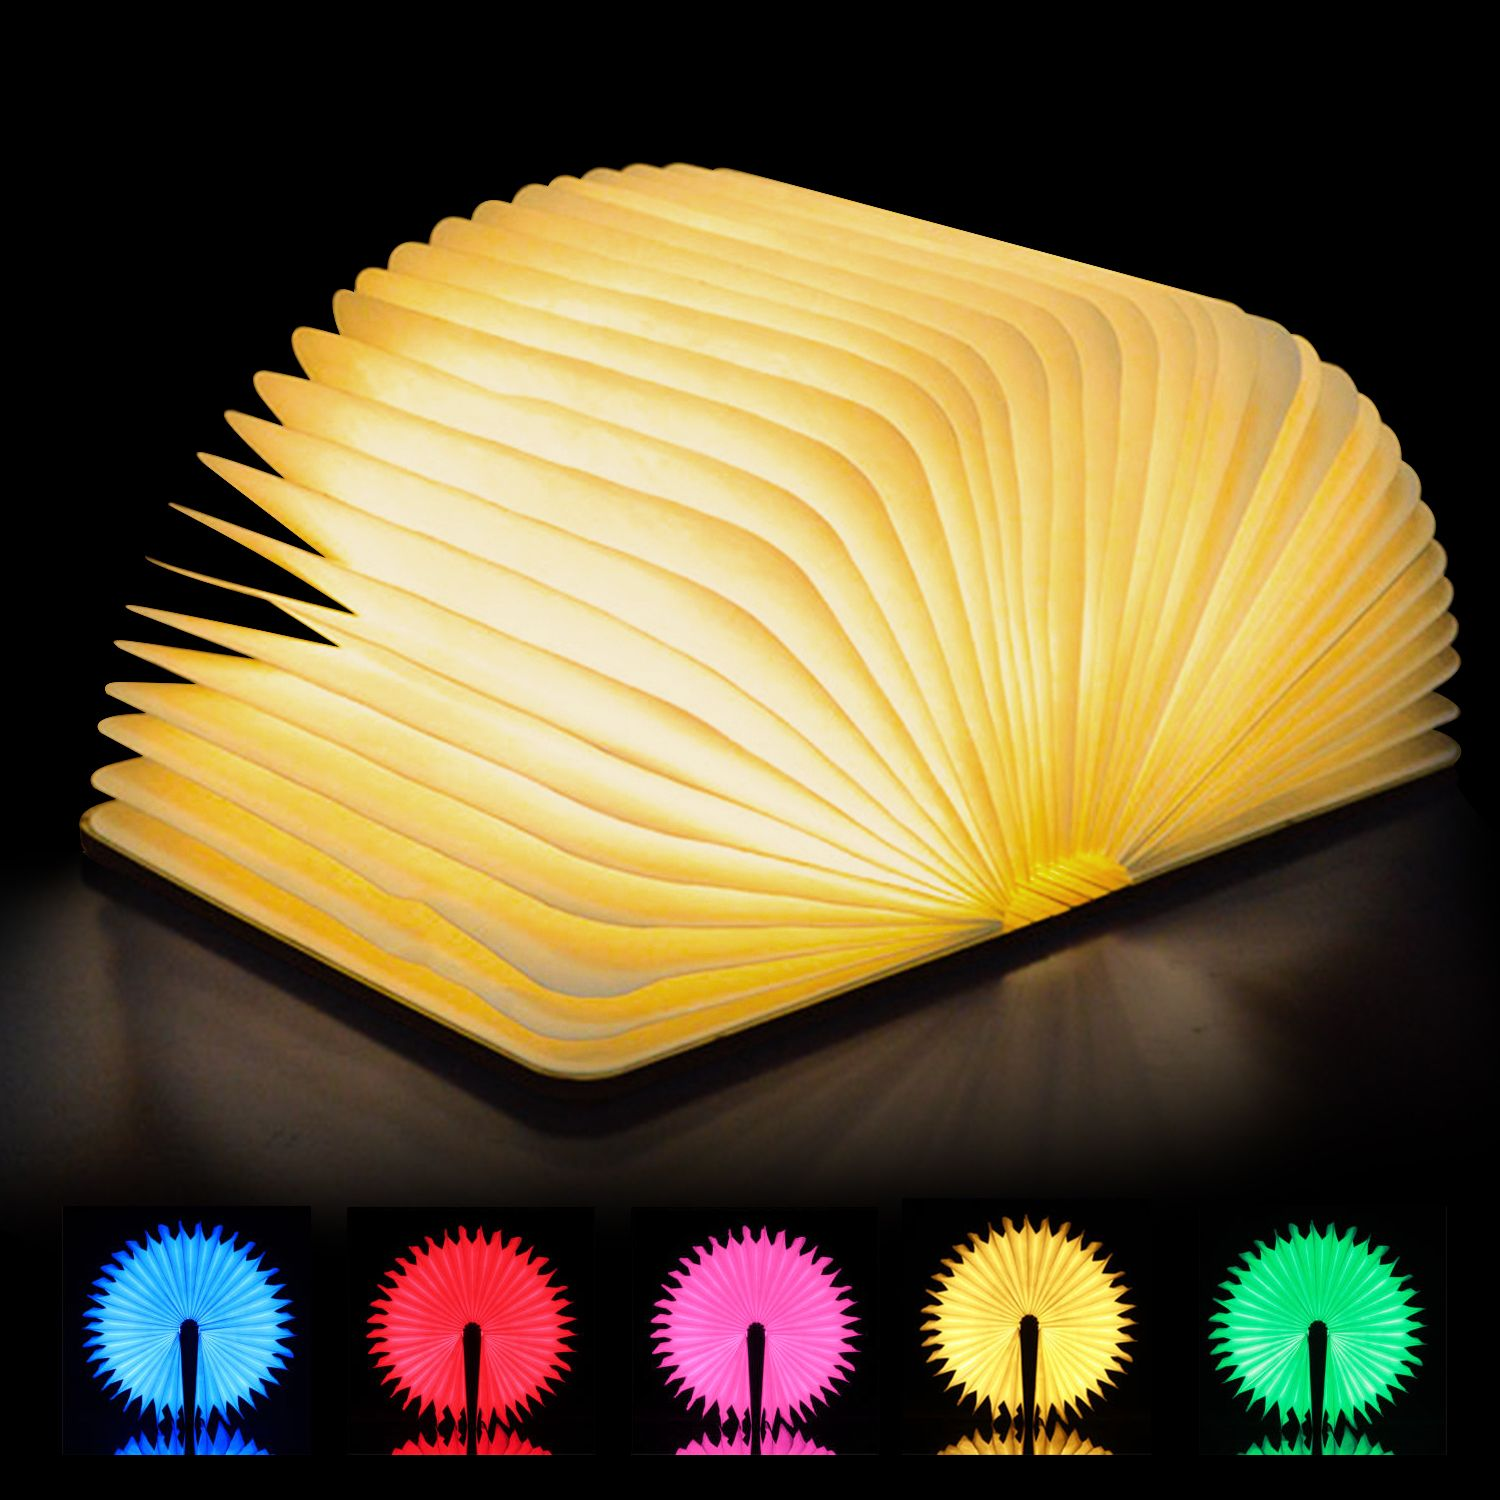 Magicfly Colorful Usb Rechargeable Led Folding Book Light Nightlight Desk Night Lamp Walmart Com In 2020 Book Lamp Book Lights Wooden Lamp